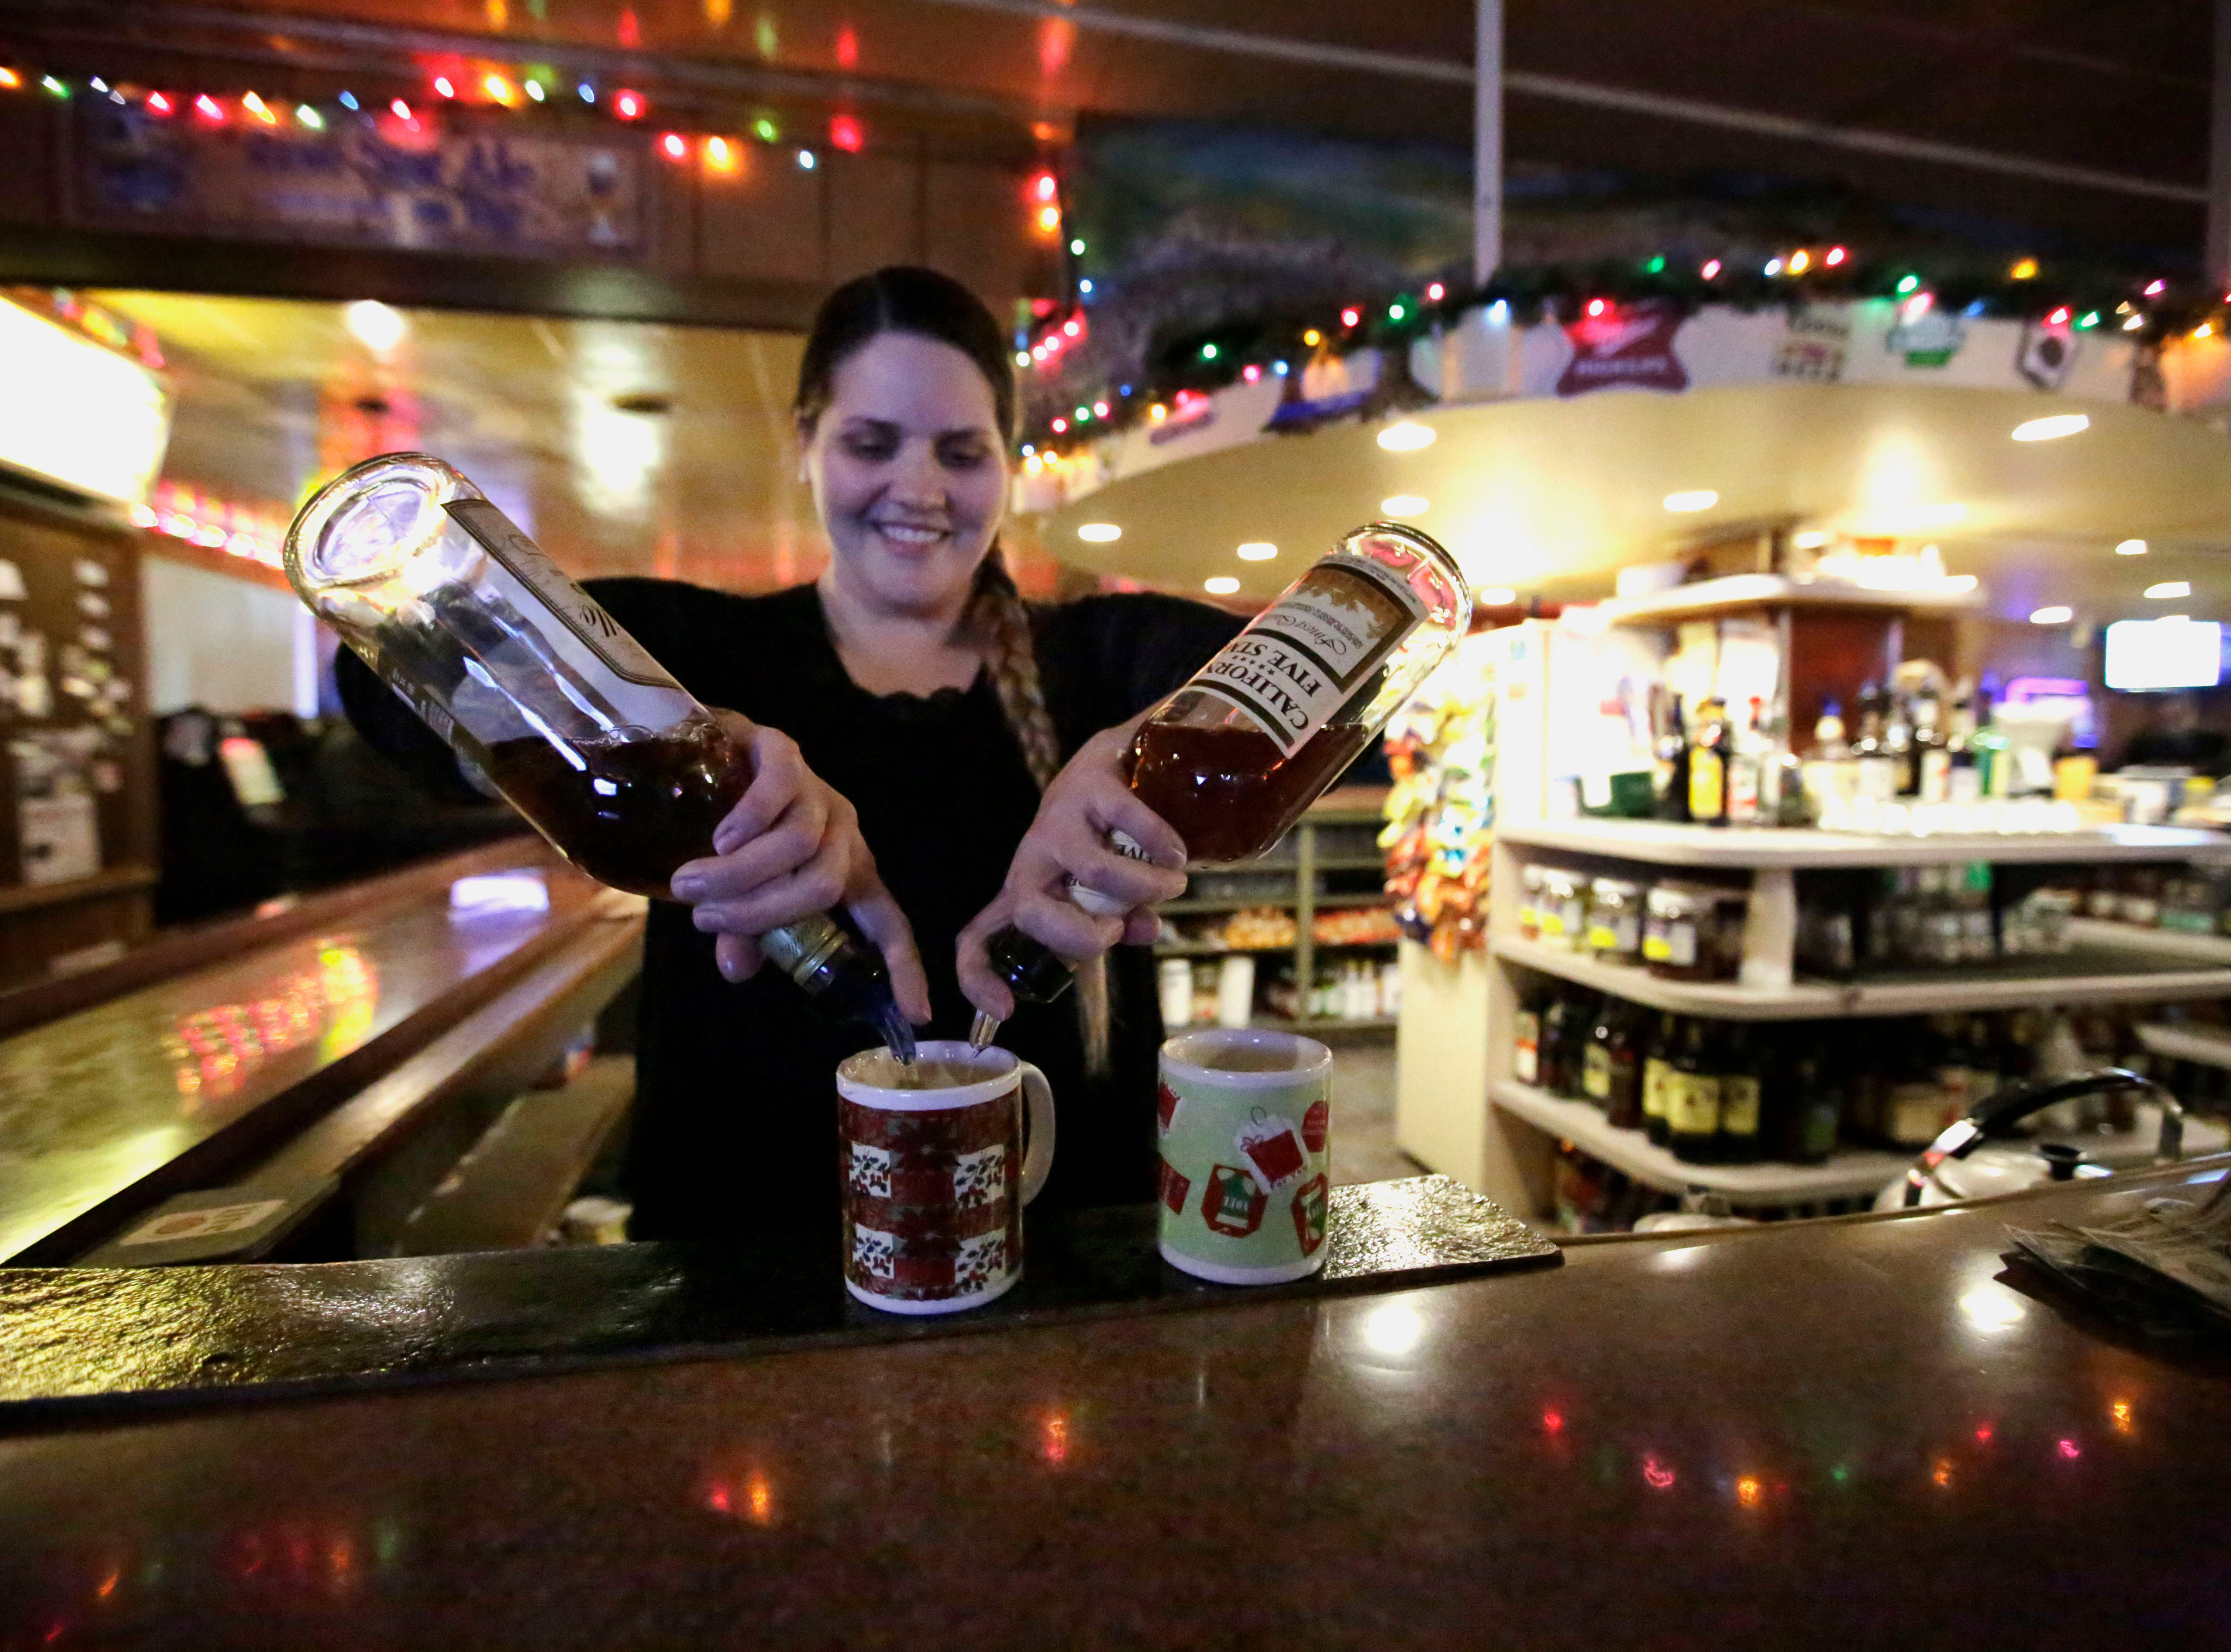 Bartender Alison Weller prepares a pair of Tom and Jerrys on Friday, December 7, 2018, at The Domino Bar in Wausau, Wis. The Domino serves the popular drink every year, from Thanksgiving until New Year's Day.Tork Mason/USA Today NETWORK-Wisconsin